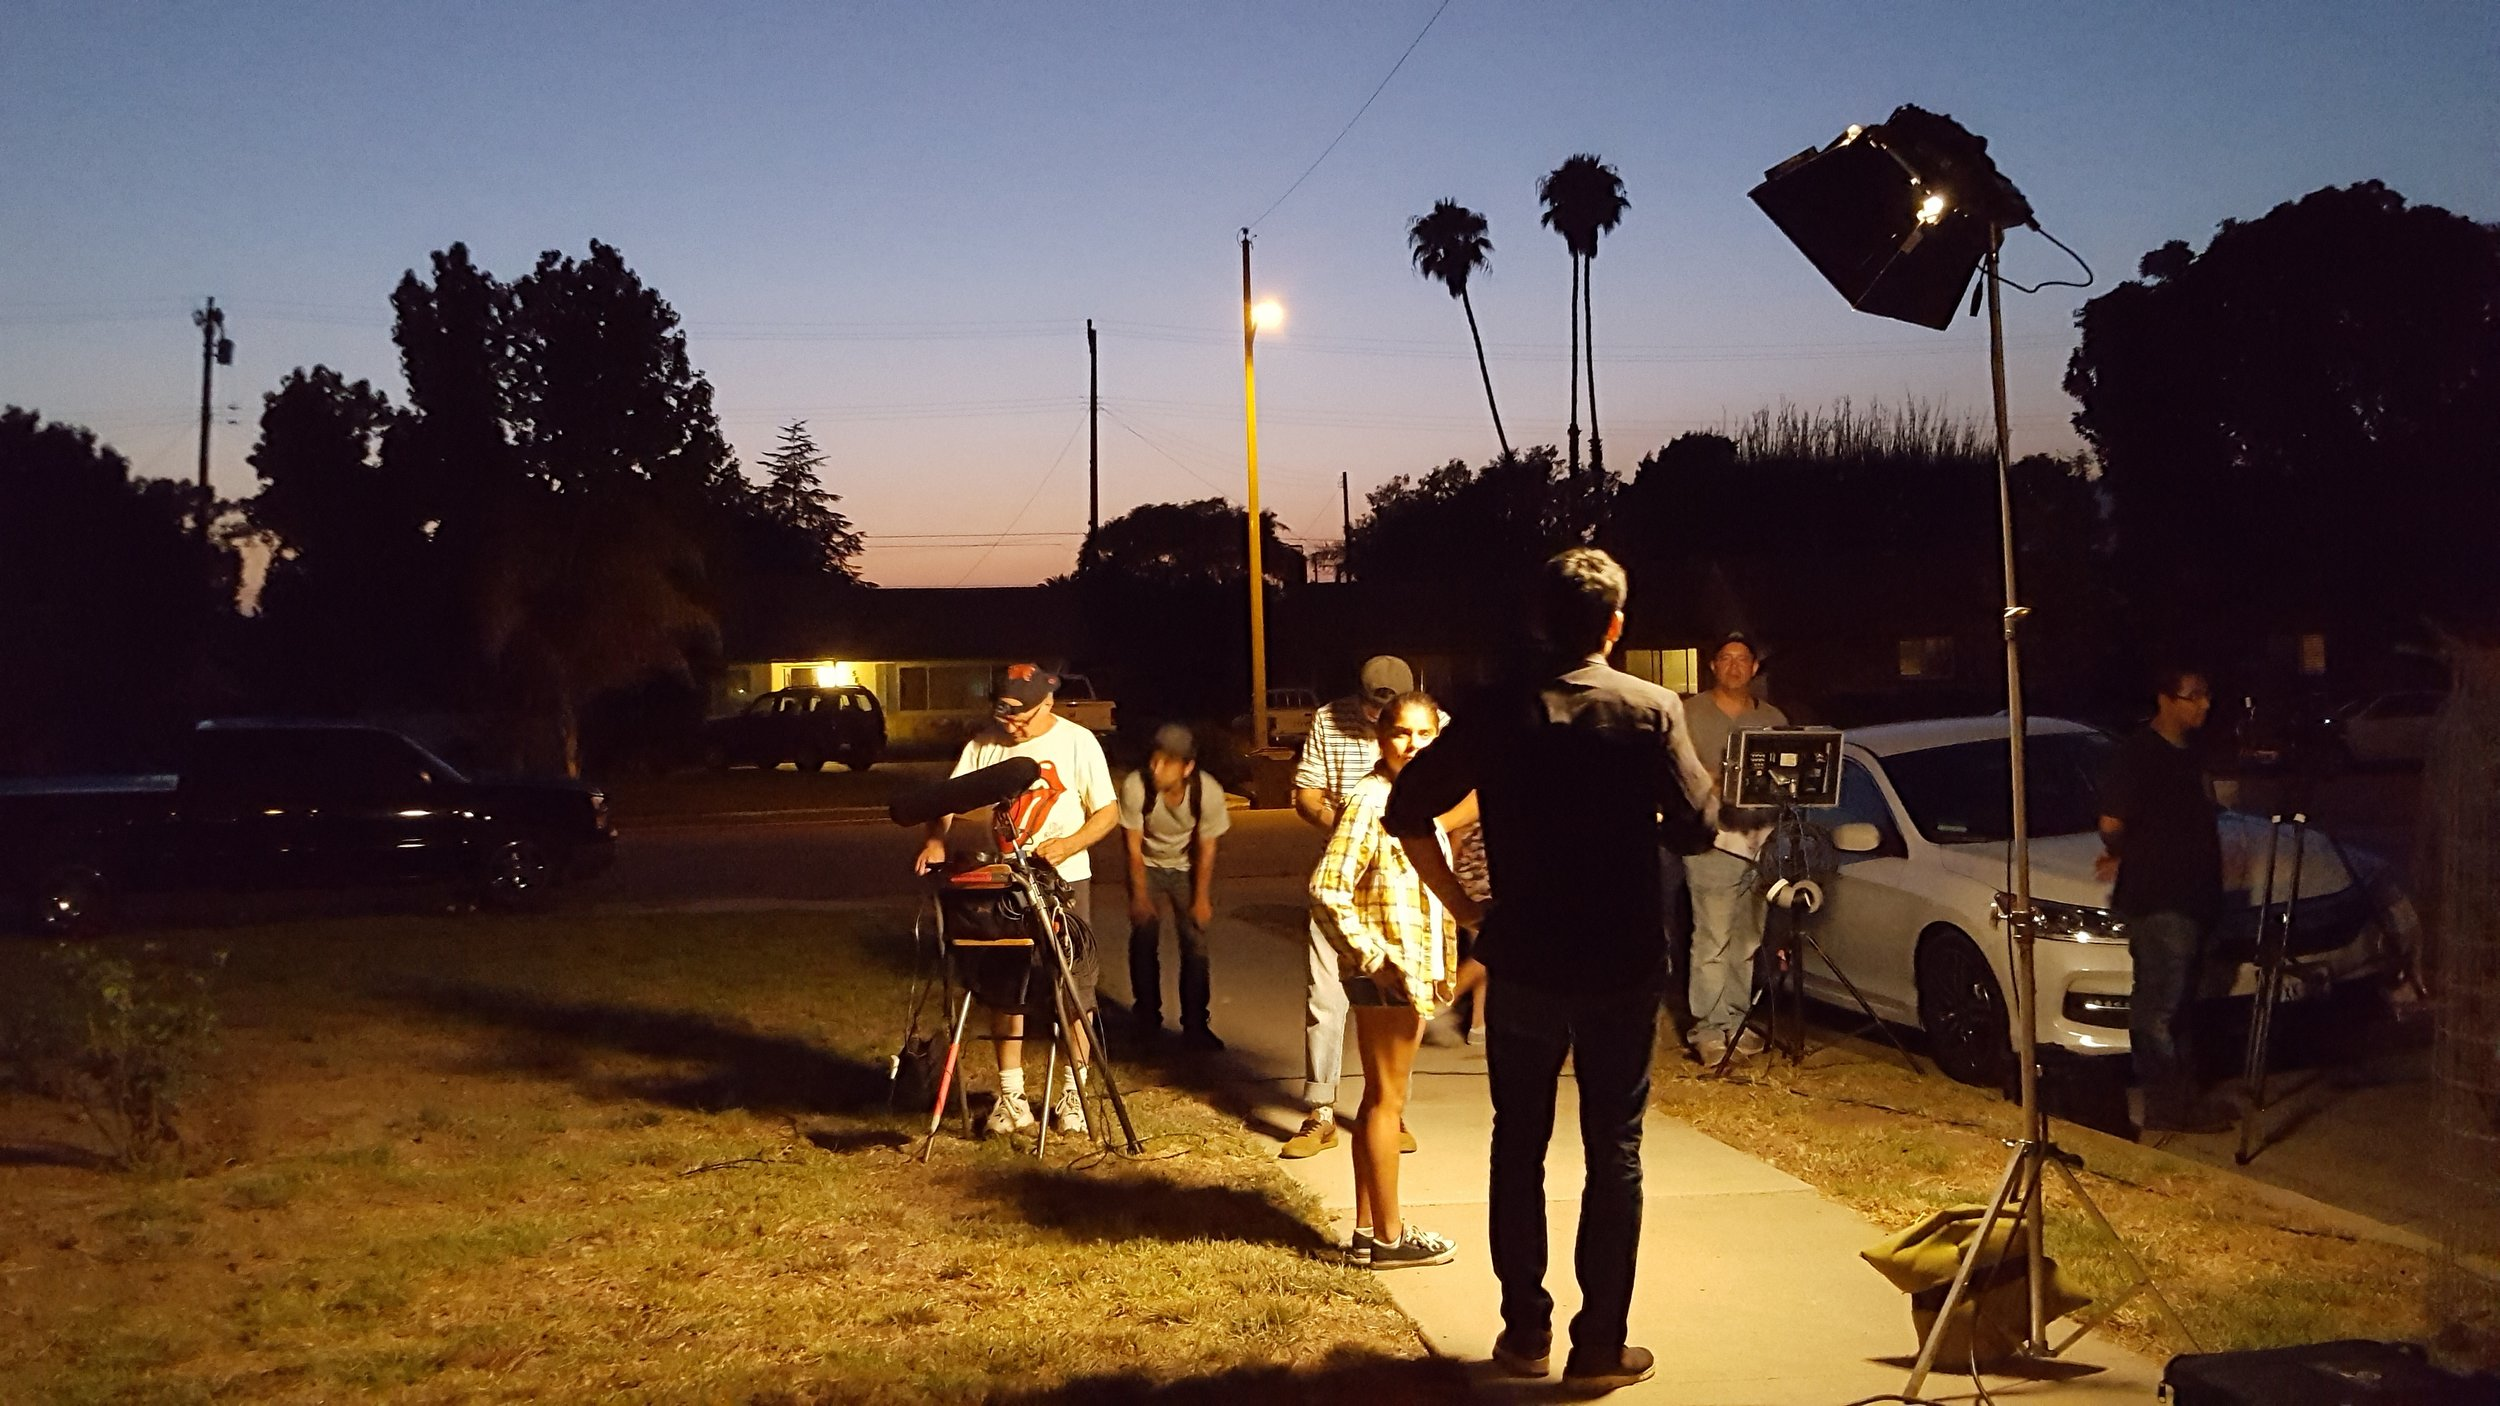 Lead actors get ready for a rare night scene in Salsipuedes Street